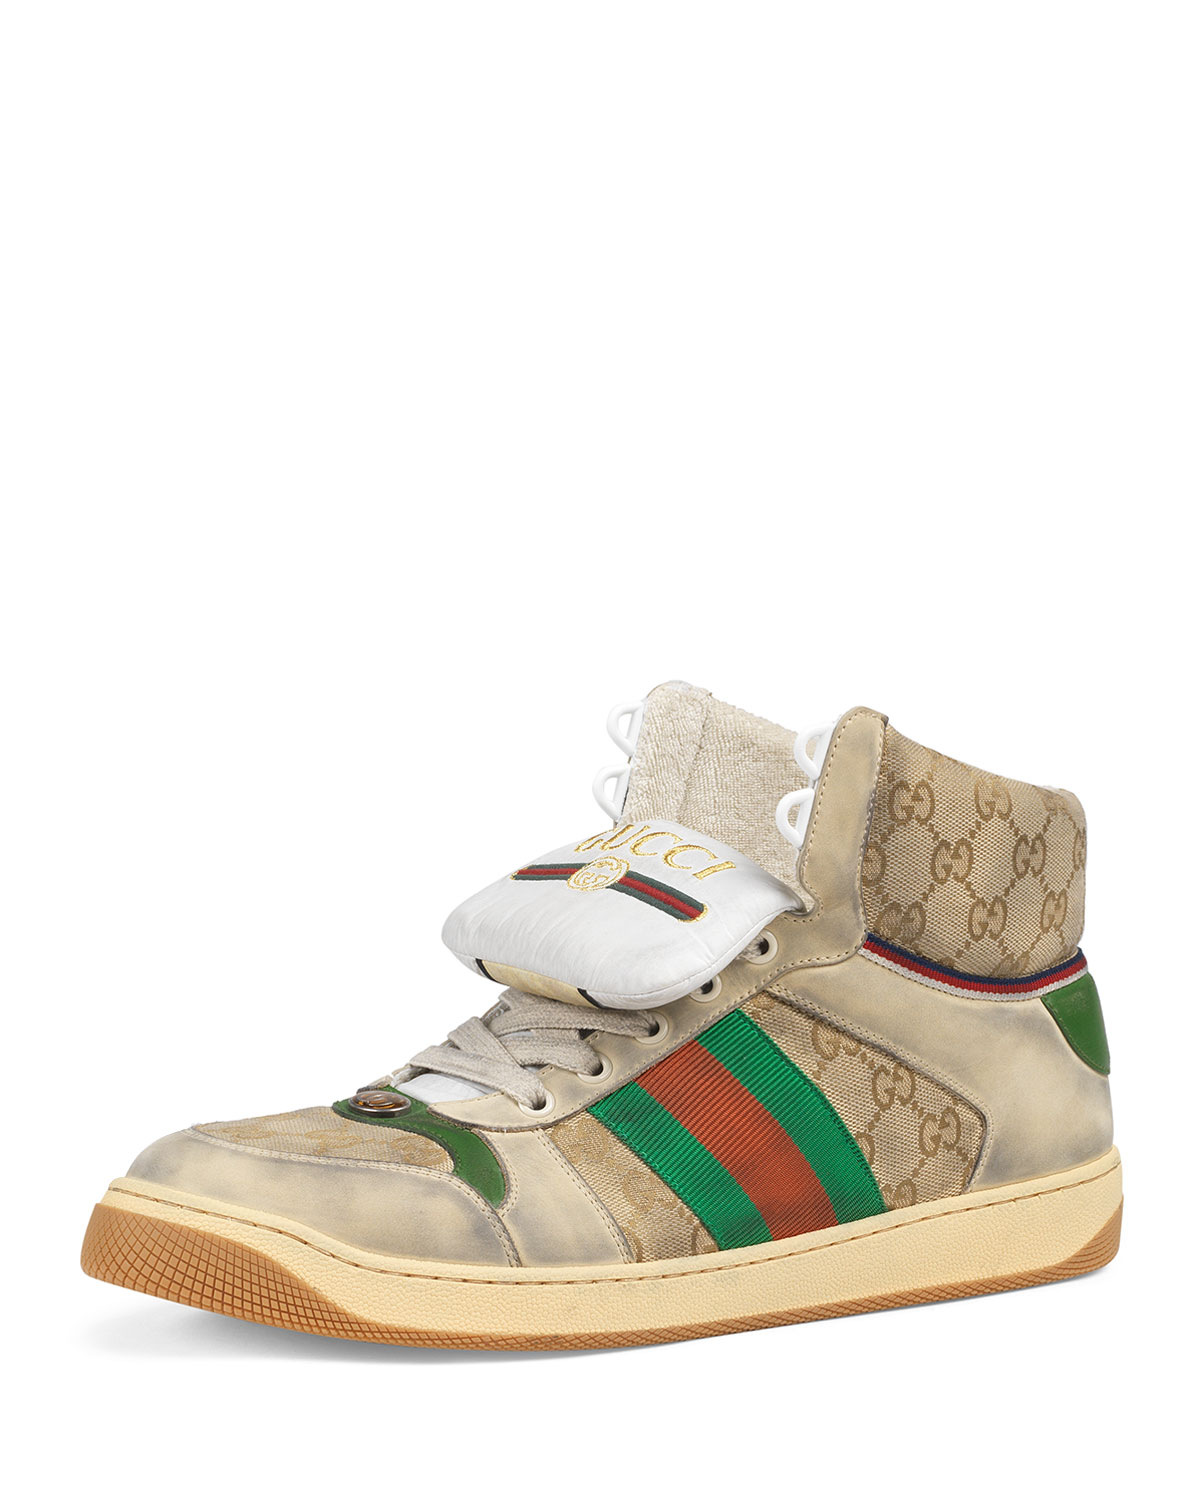 aa41be63487 Gucci Men s Screener High-Top GG Canvas Sneakers